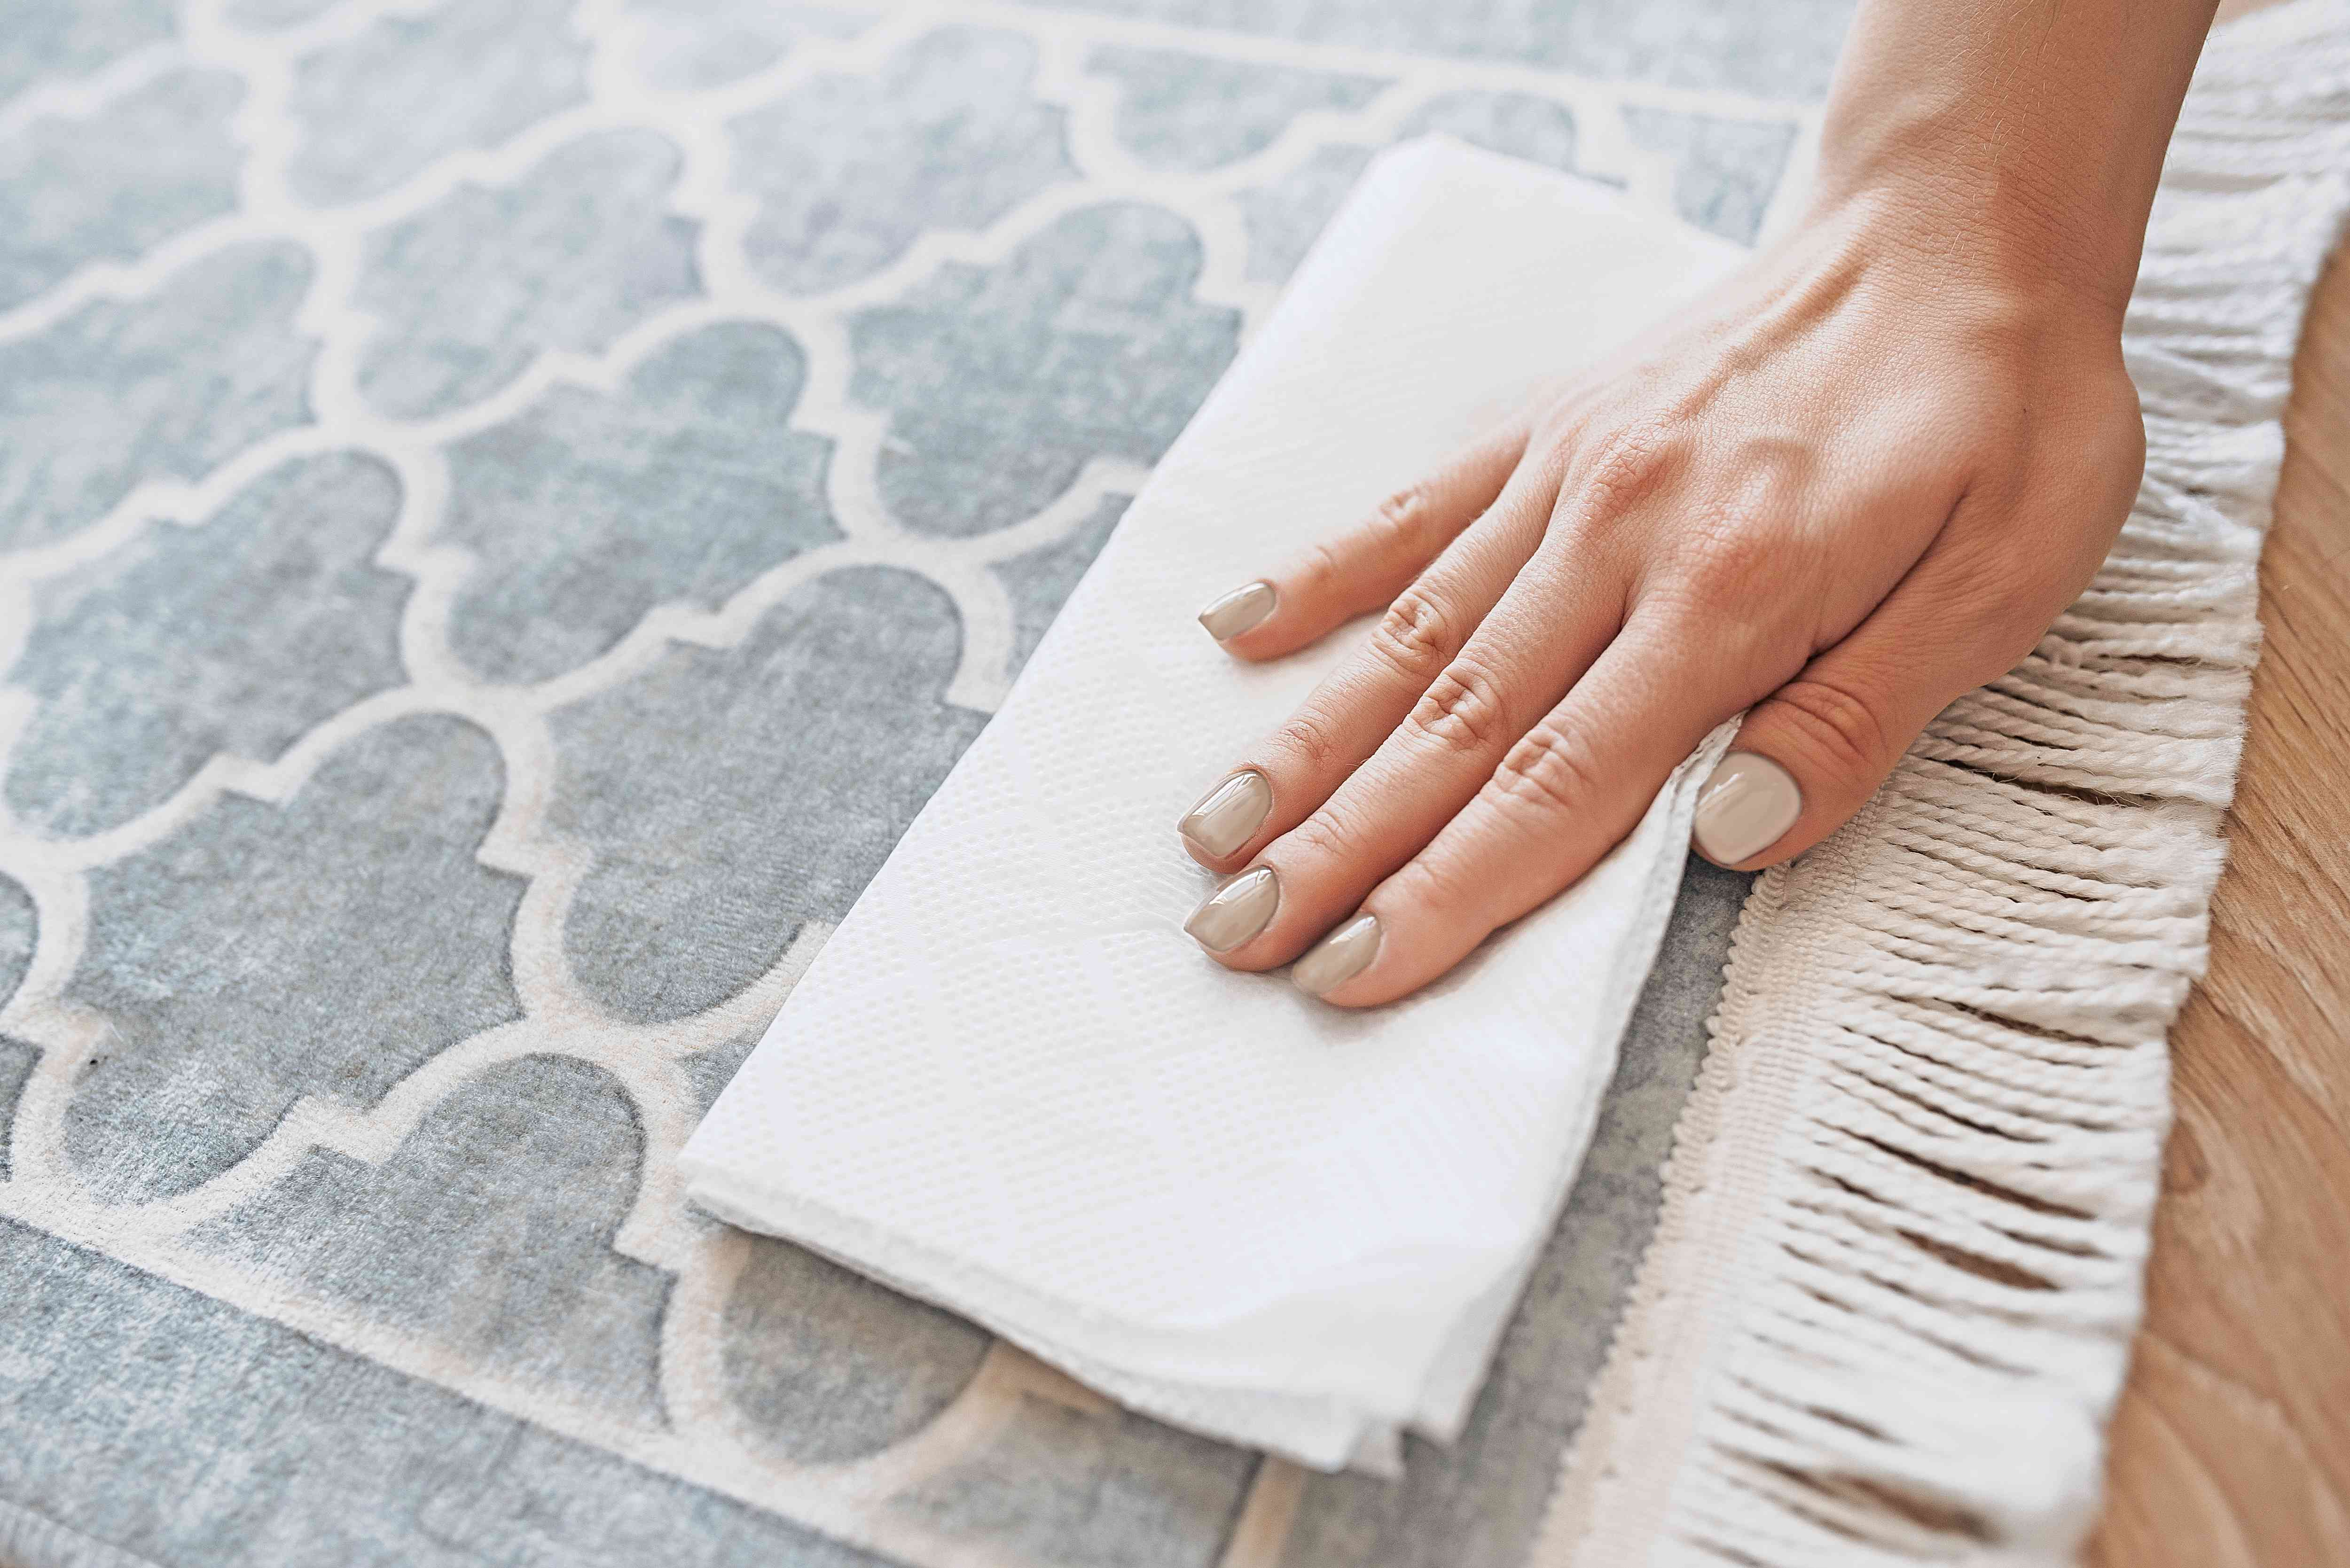 blotting carpet with paper towels